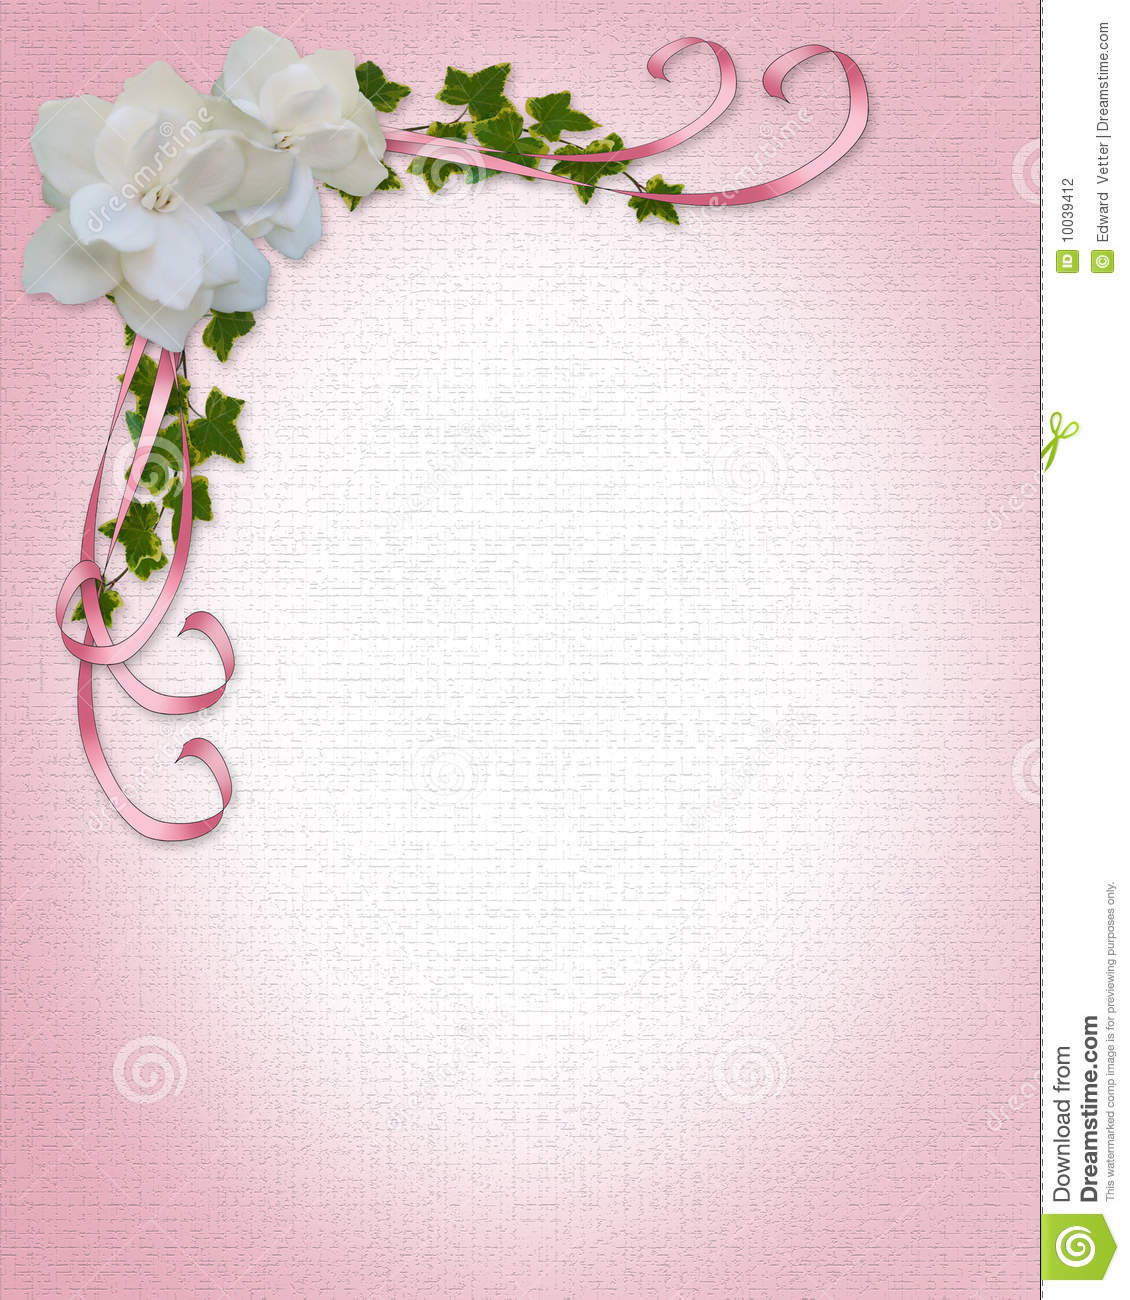 Wedding Invitation Border Gardenias Stock Illustration ...